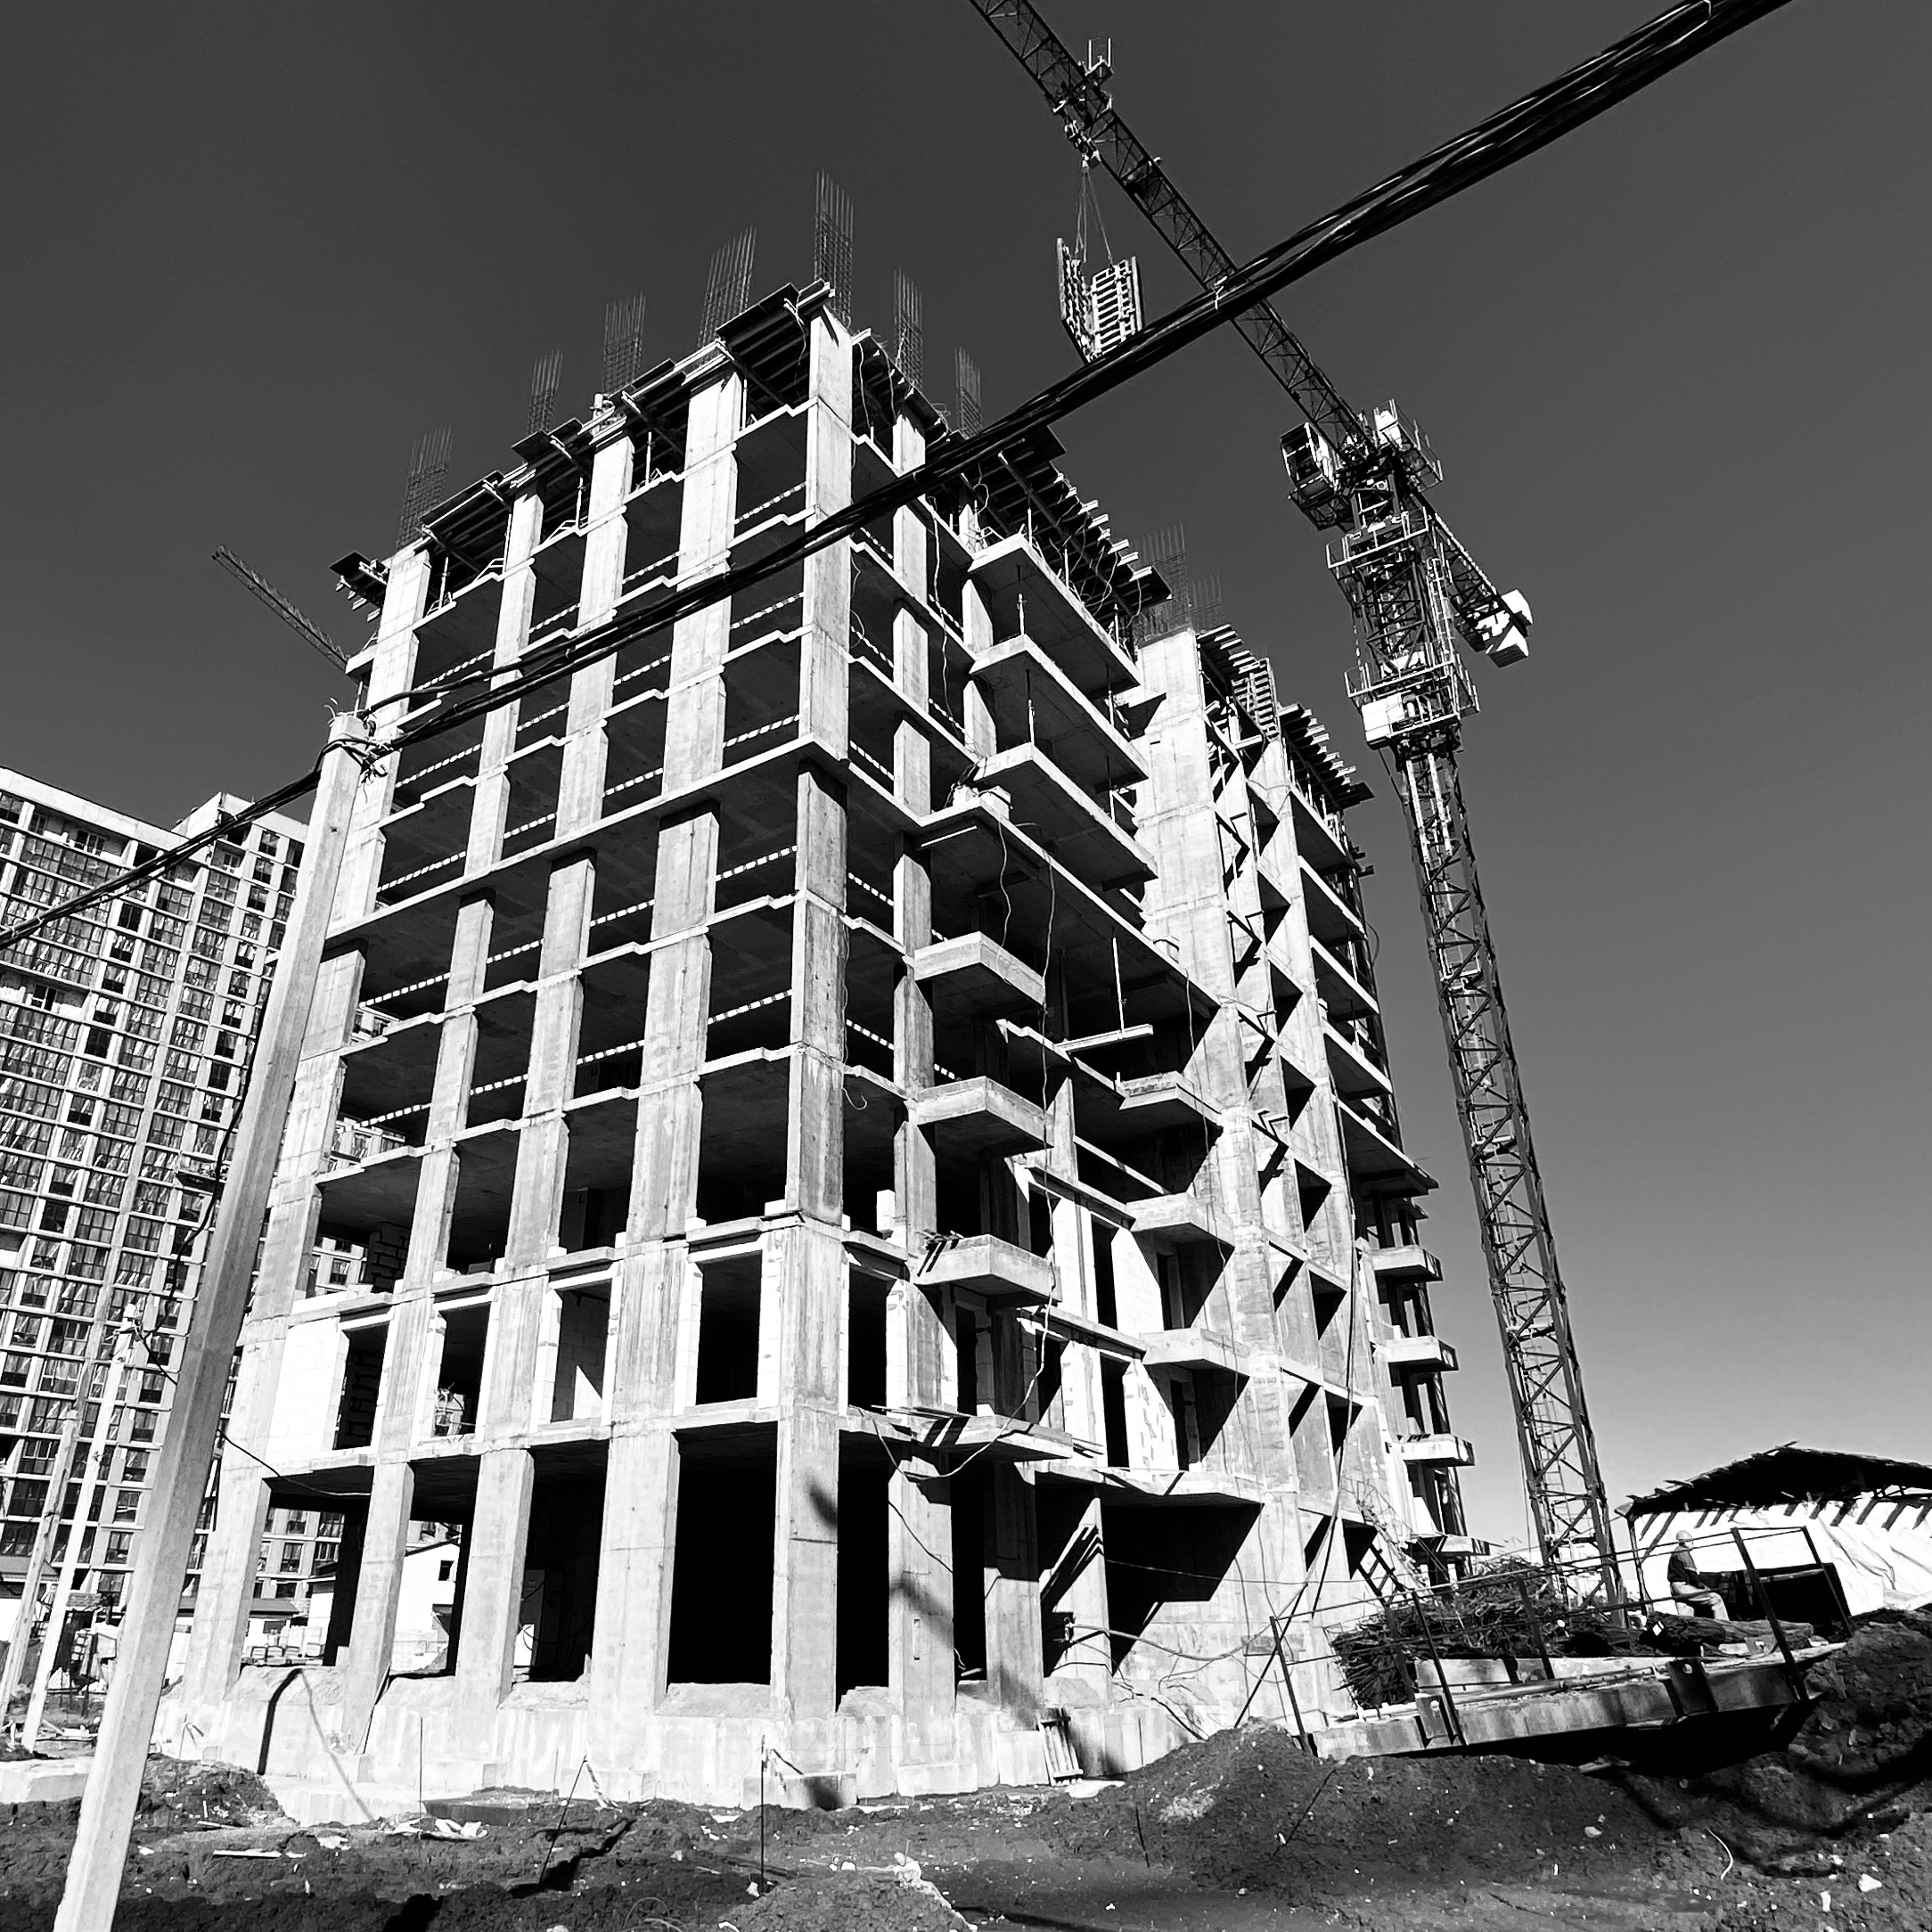 """Building """"Salt Lake City"""" in the """"Minsk World"""" multifaceted residential complex"""